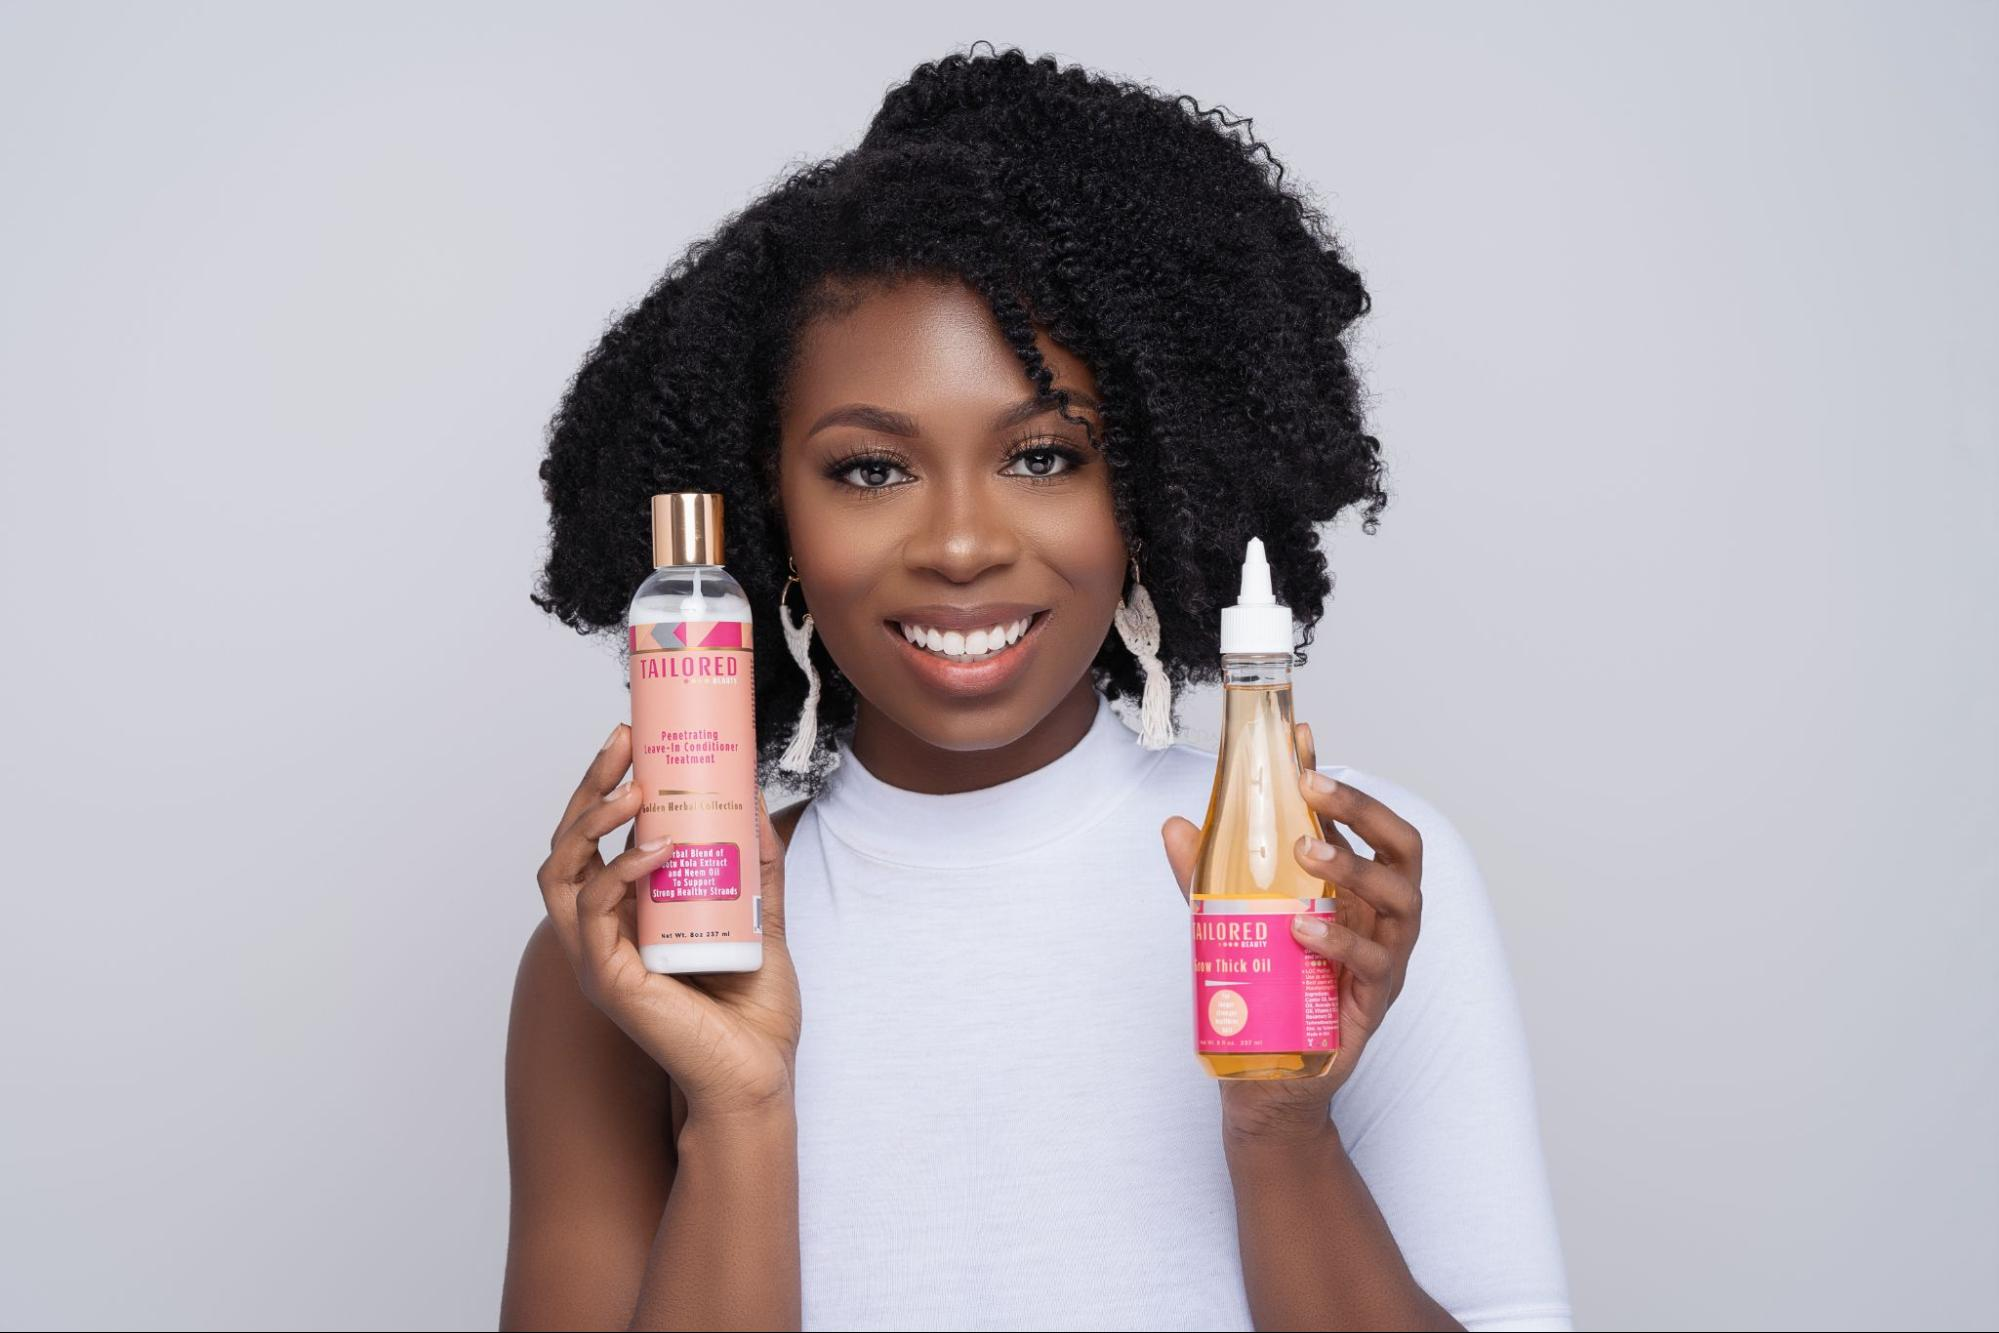 A model in a white outfit holding two of Tailored Beauty's products.